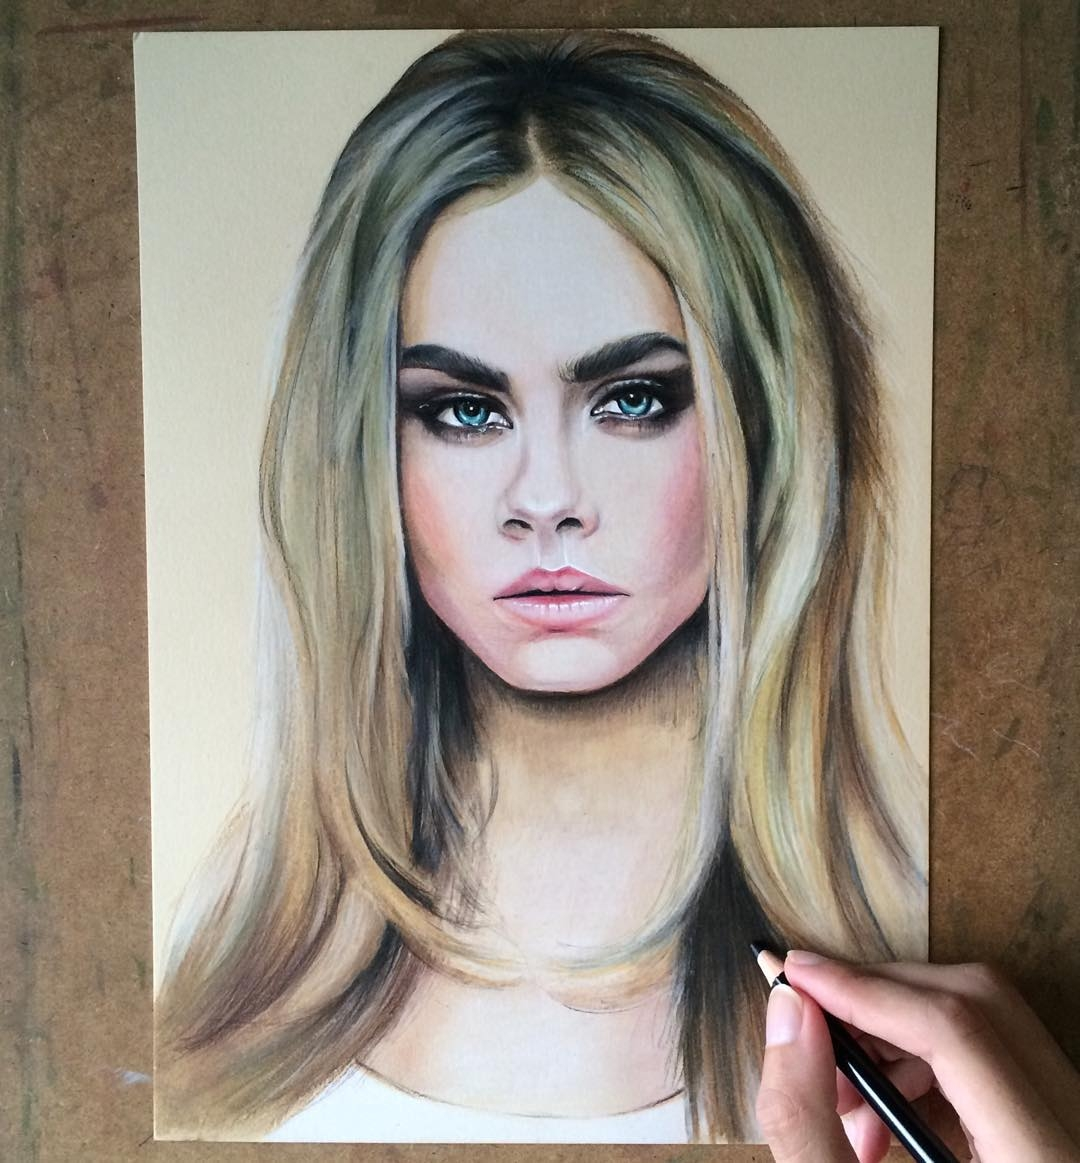 01-Cara-Delevingne-Sushant-S-Rane-Constructing-3D-Drawings-one-Section-at-the-Time-www-designstack-co